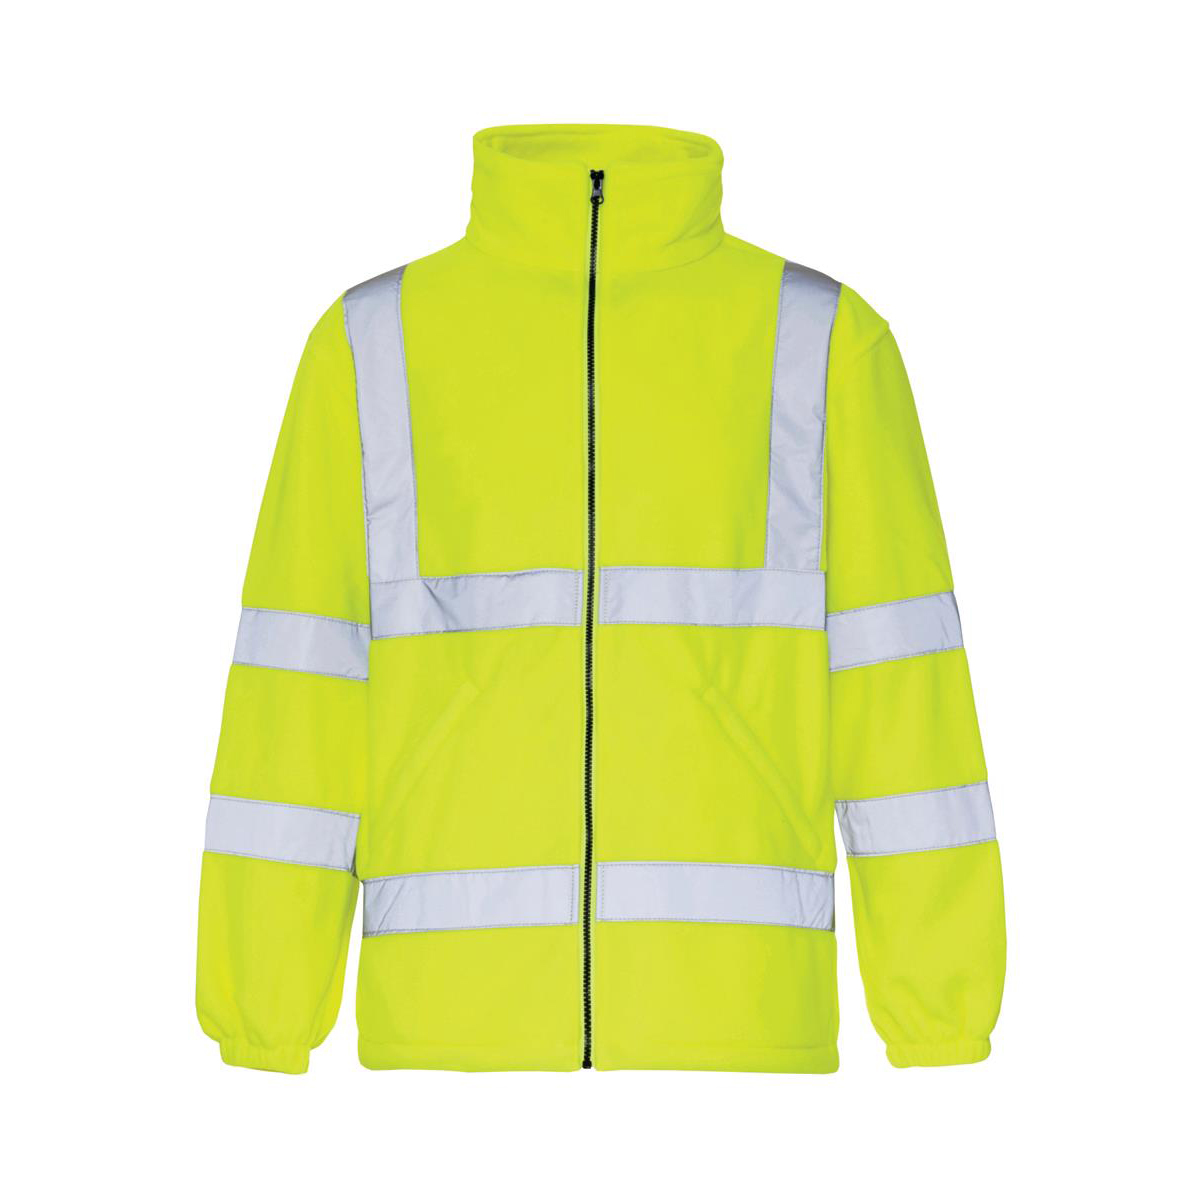 High-Vis Fleece Jacket Poly with Zip Fastening 2XL Yellow Ref CARFSYXXL Approx 2/3 Day Leadtime